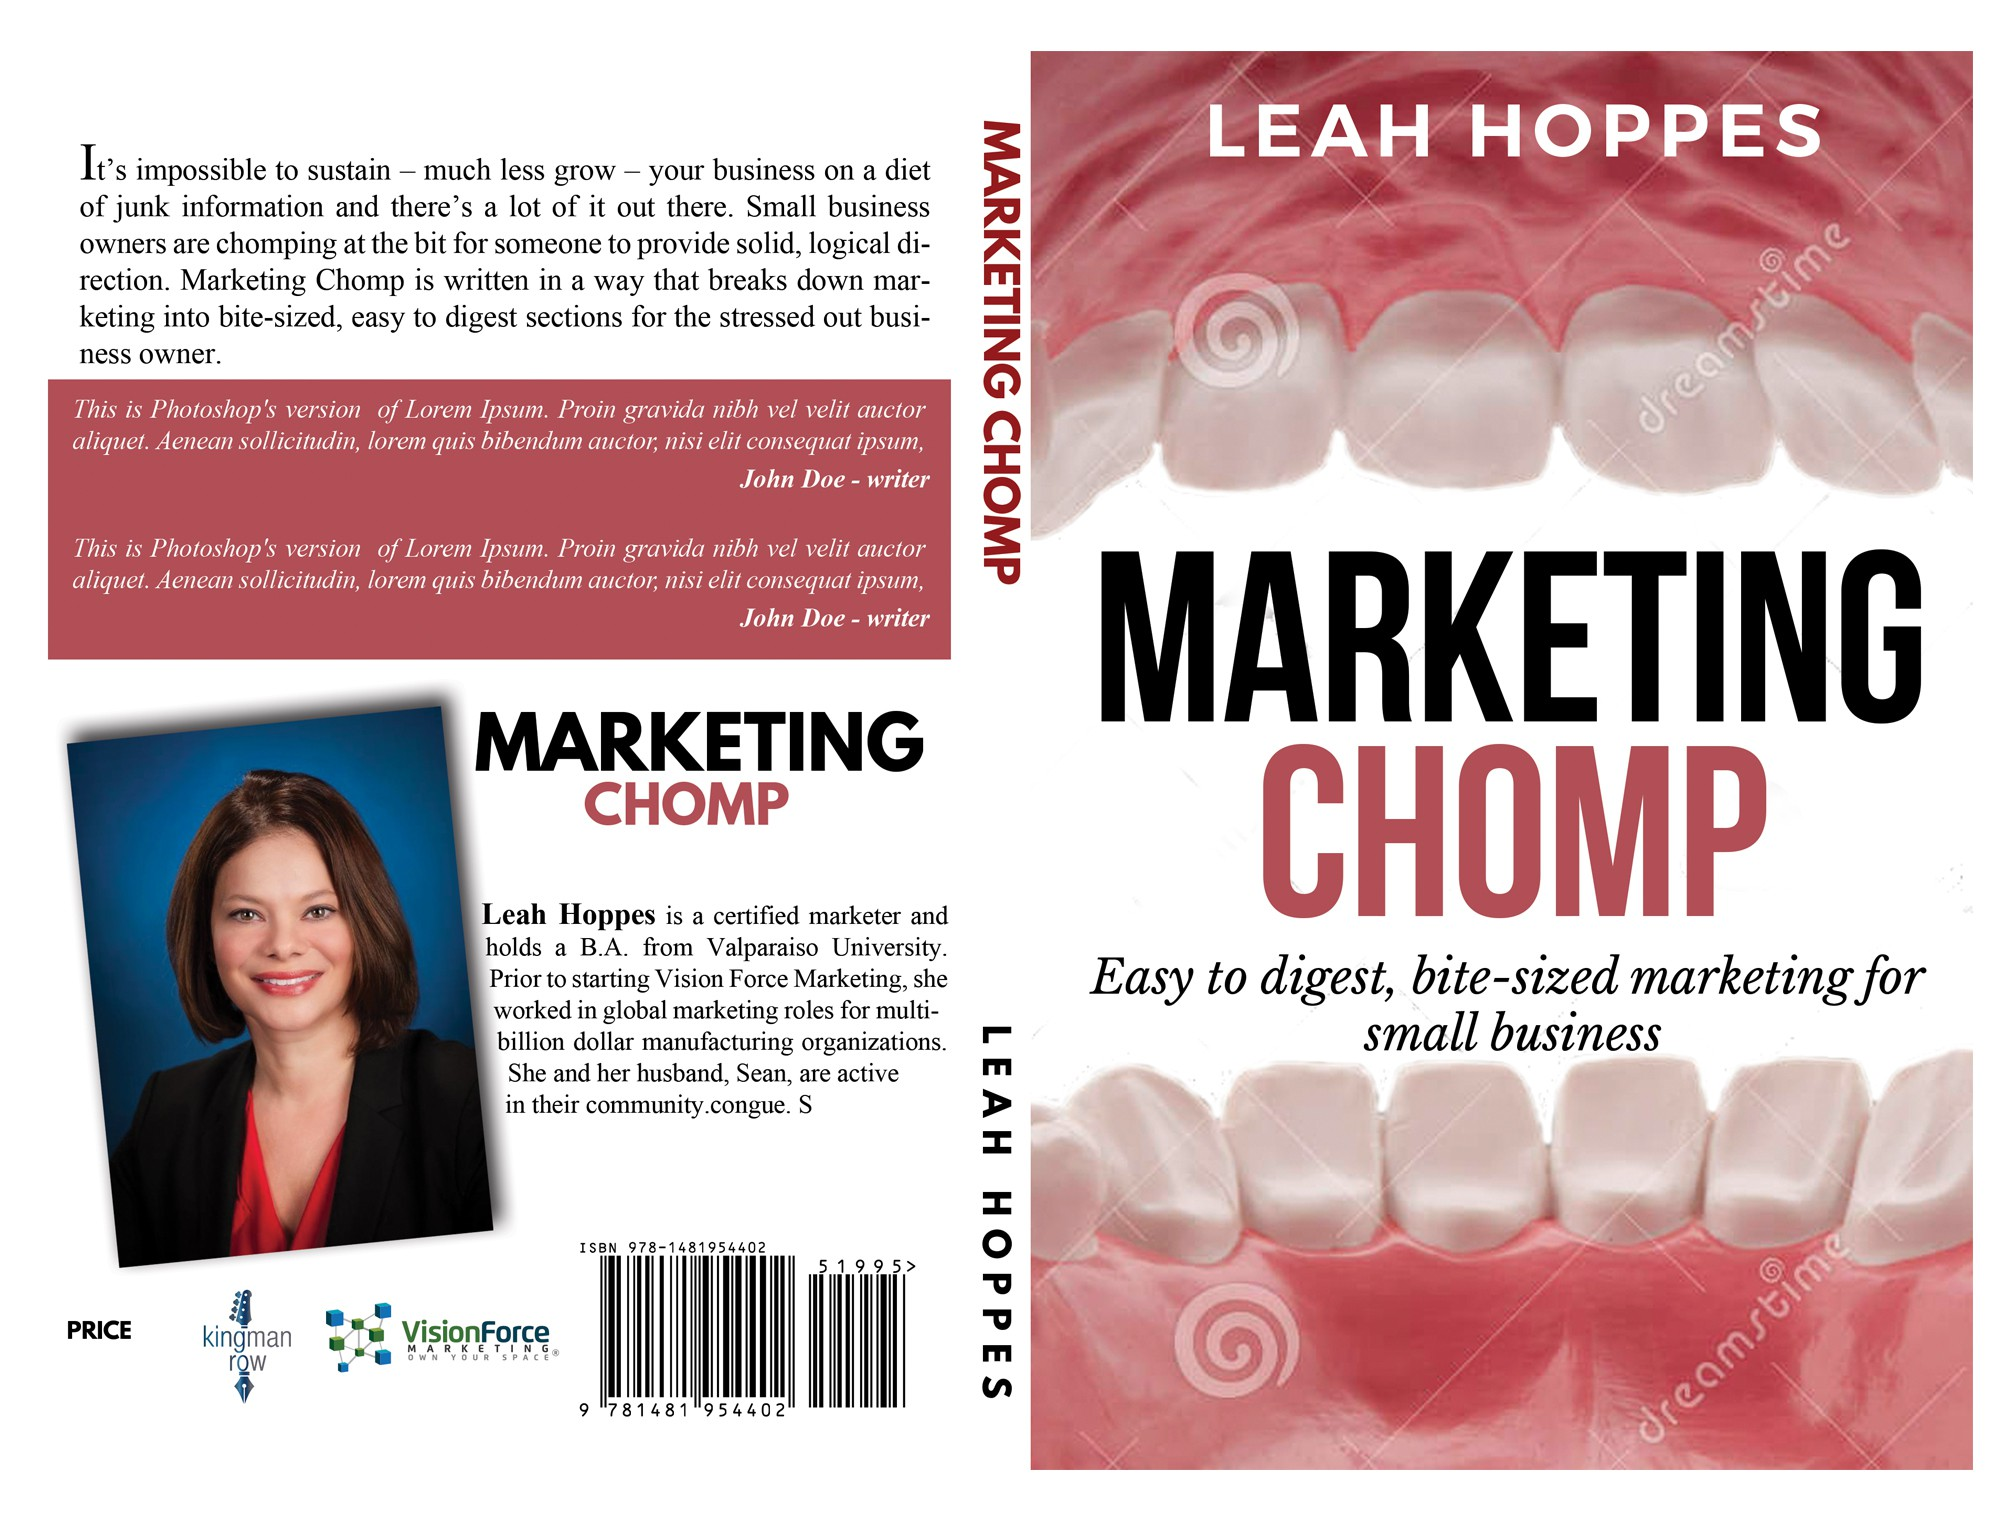 Create a fun, compelling, and engaging title for this marketing book titled: Marketing Chomp